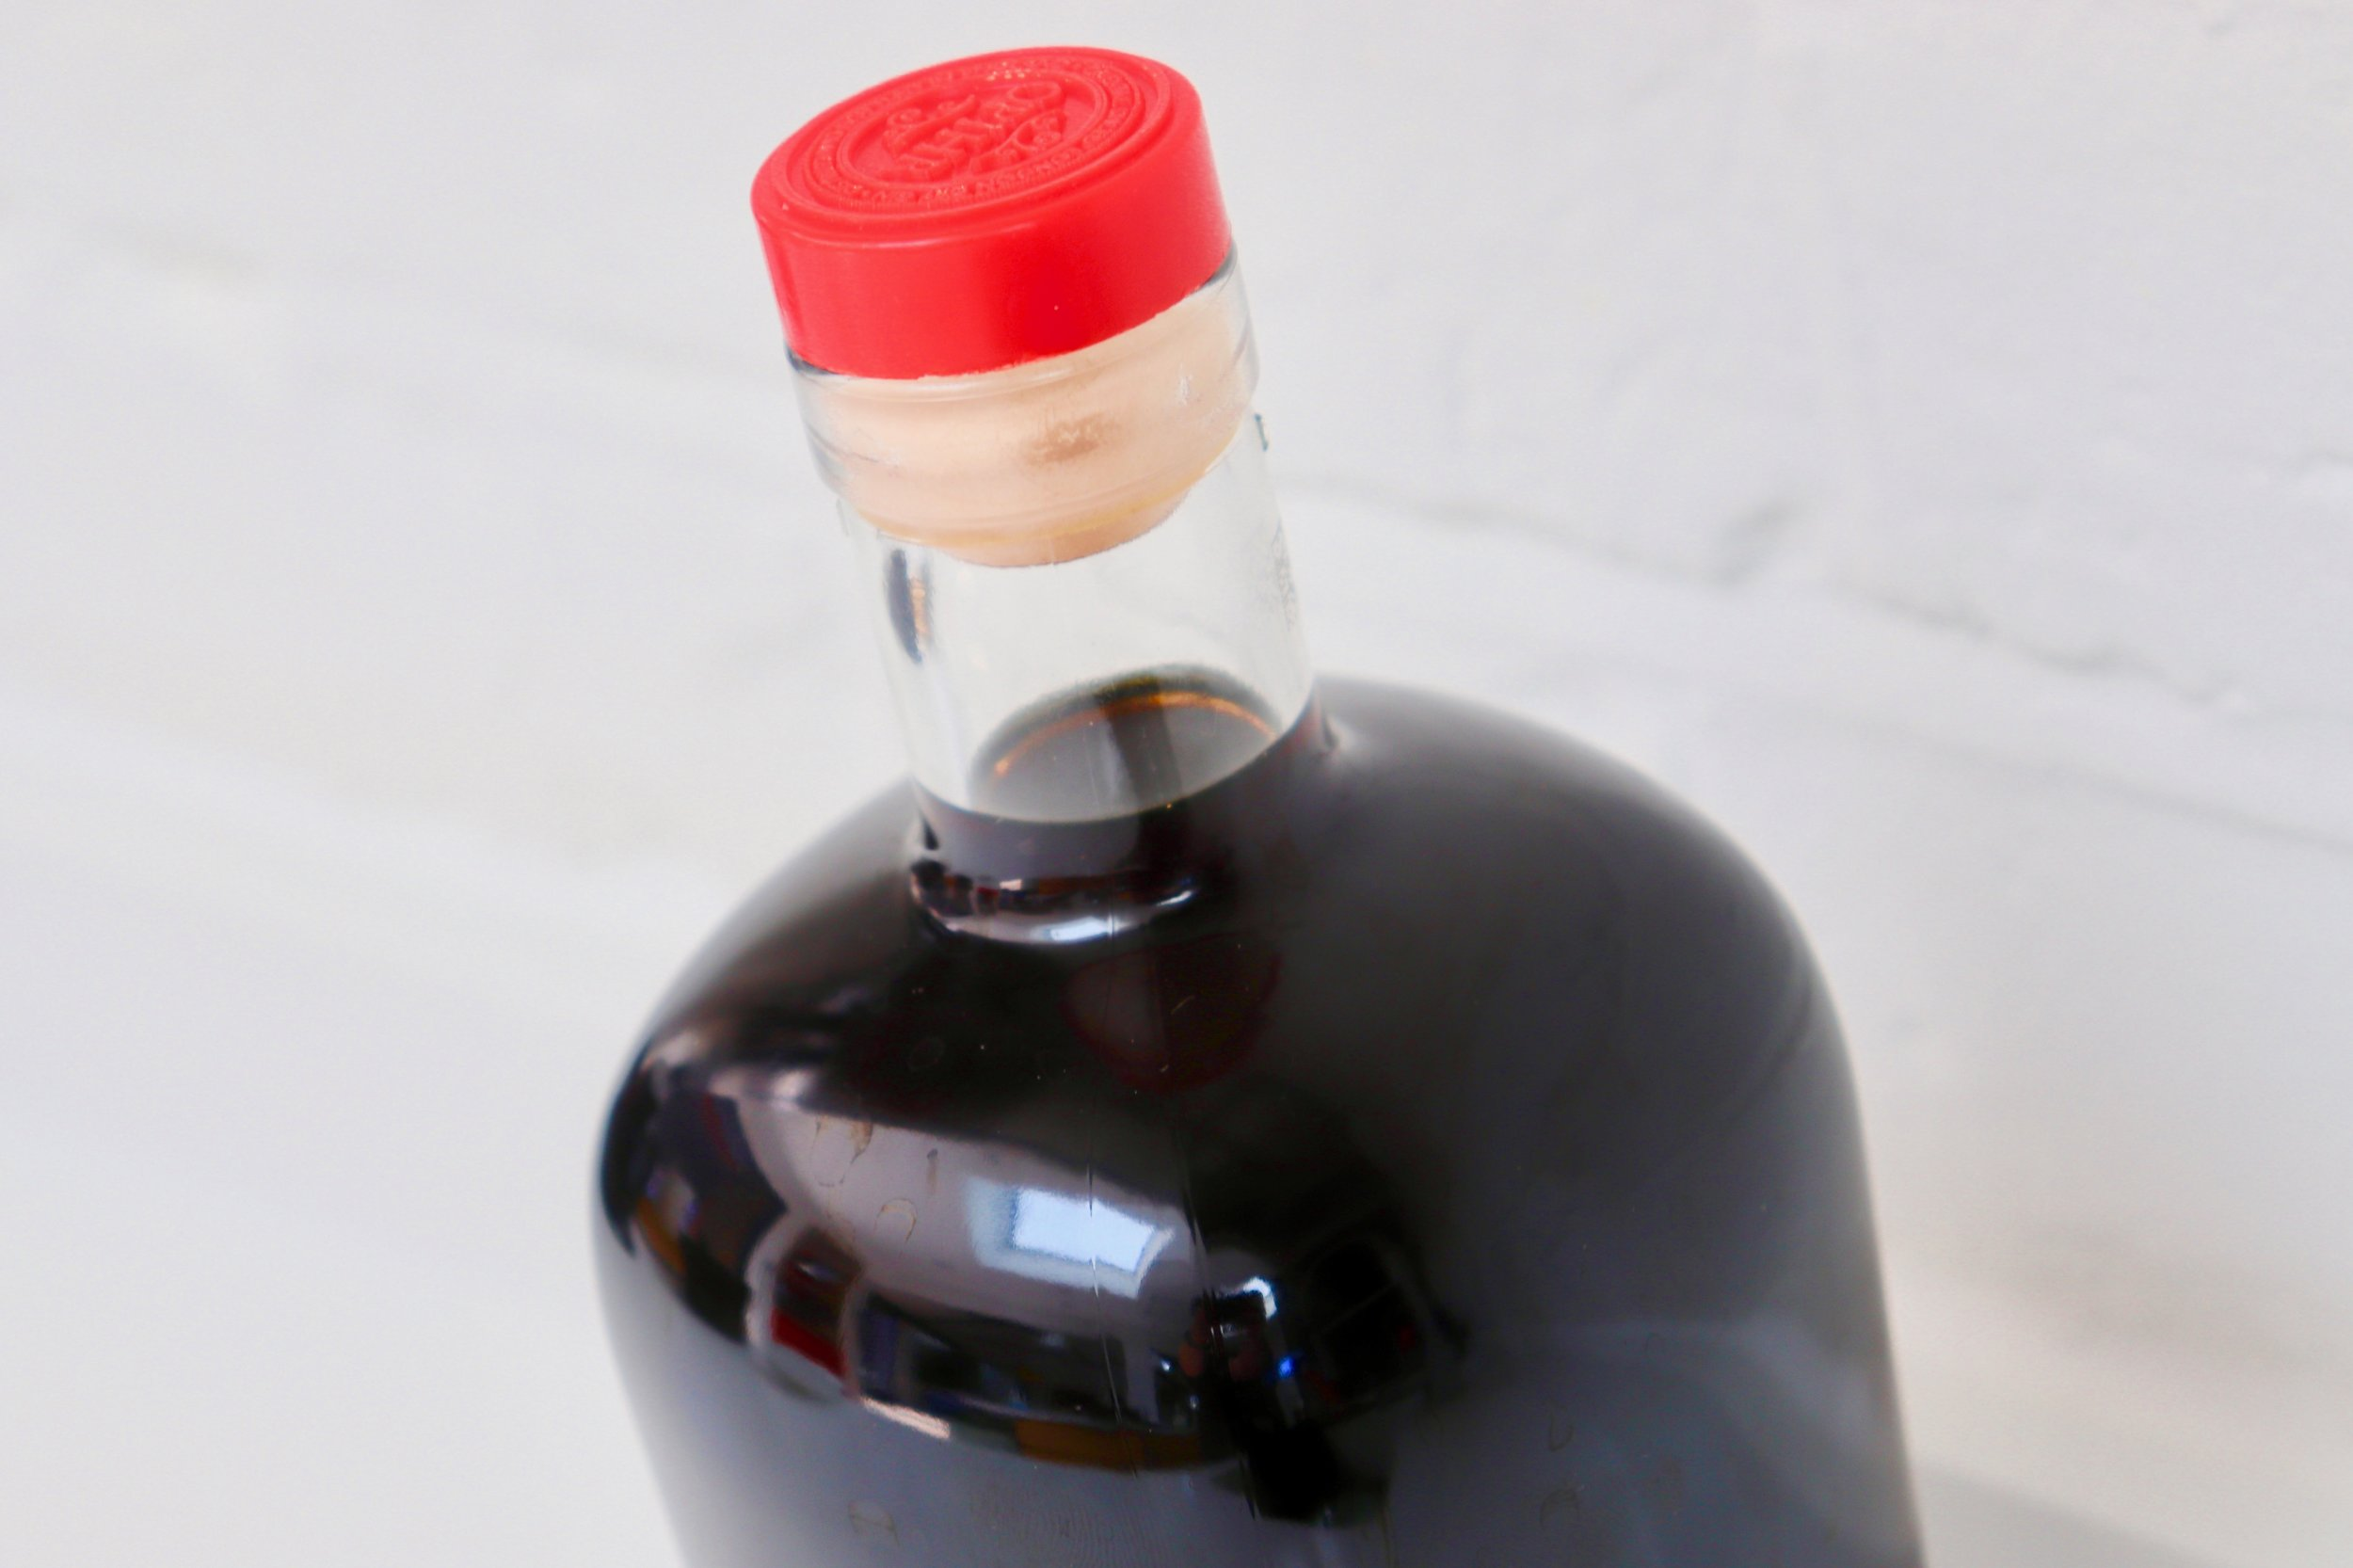 Cafe-style cold brew coffee. Just right for coffee lovers